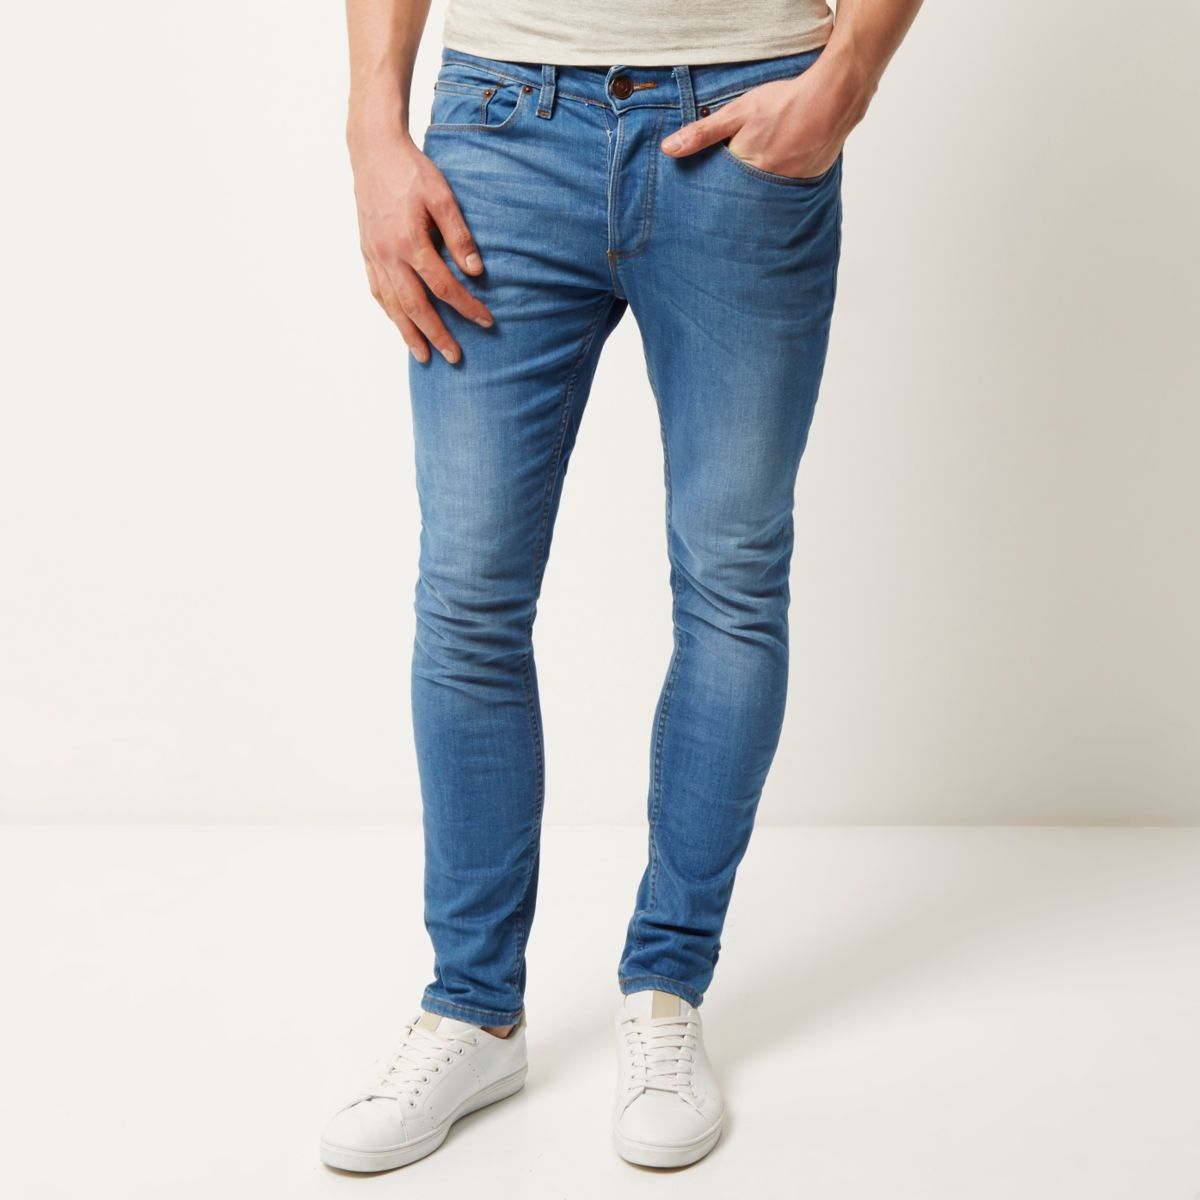 Hello SkinnyJeans® are made from classic denim but with a high nylon/elastane content. This denim is made exclusively for SkinnyJeans®.